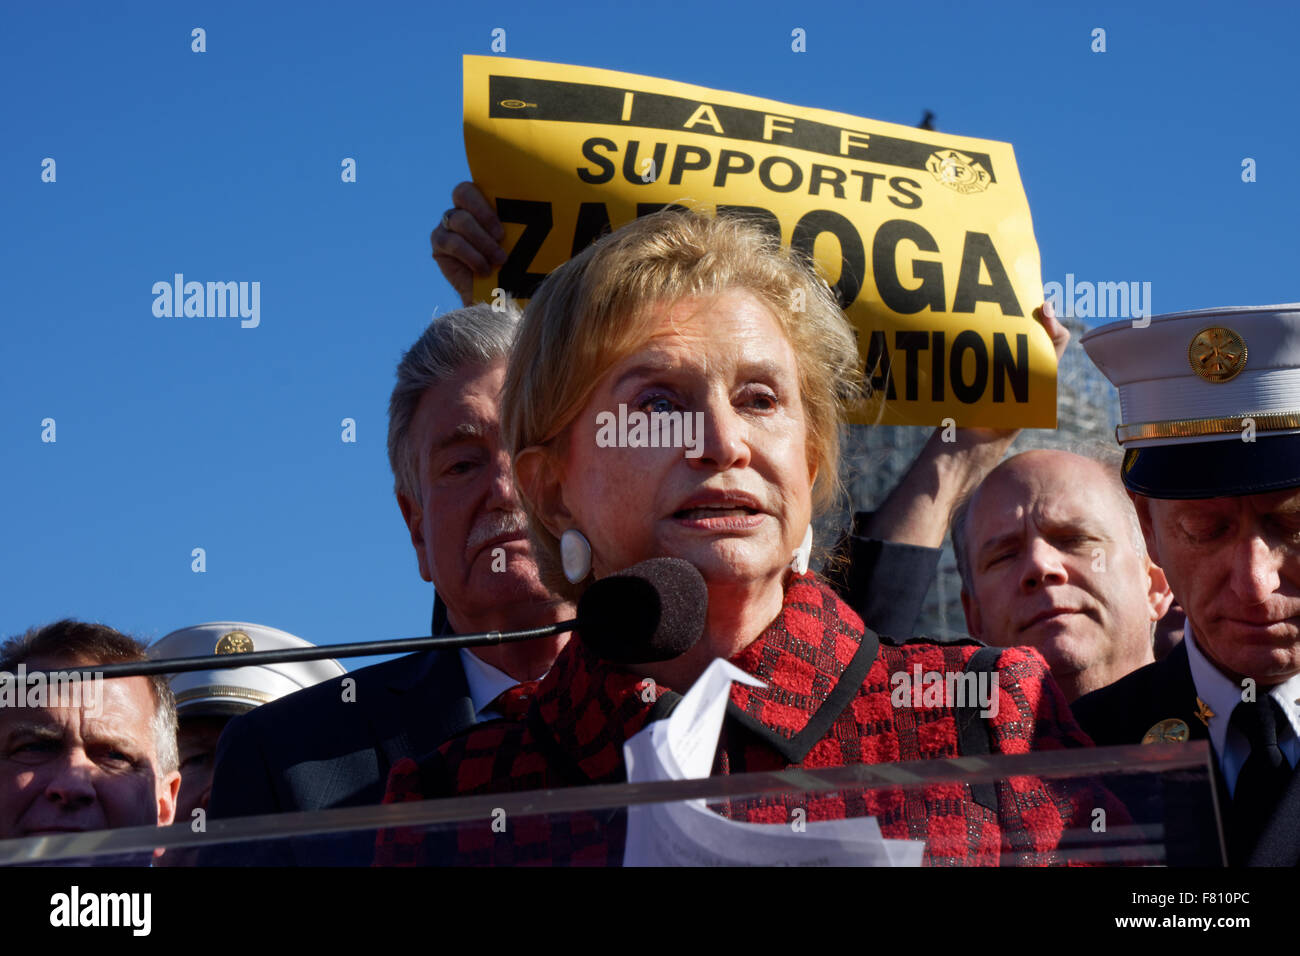 Rep. Carolyn Maloney speaking at a rally at the Capitol building in Washington, D.C. in support of the Zadroga health - Stock Image